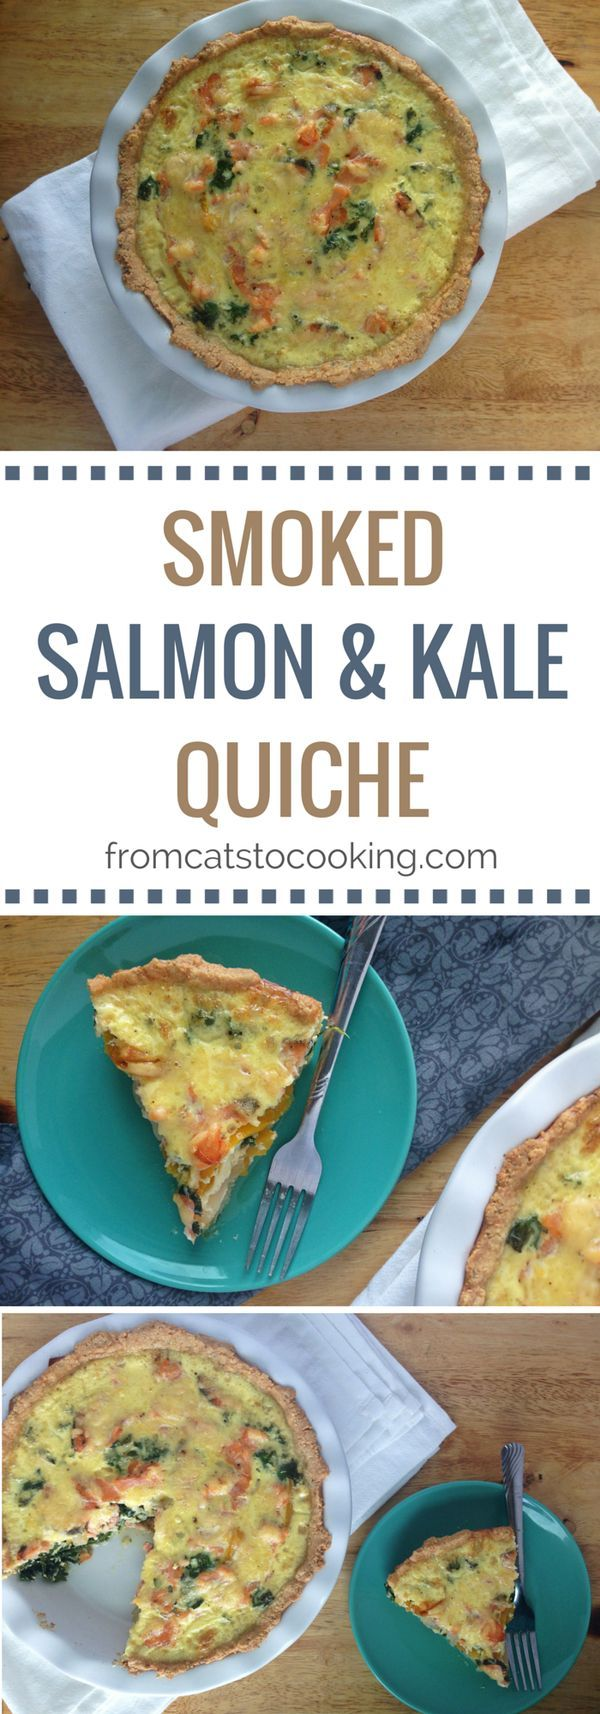 Smoked Salmon and Kale Quiche Recipe - gluten free, paleo, and can easily be made dairy free by simply omitting the cheese! | fromcatstocooking.com - Perfect for breakfast or brunch!